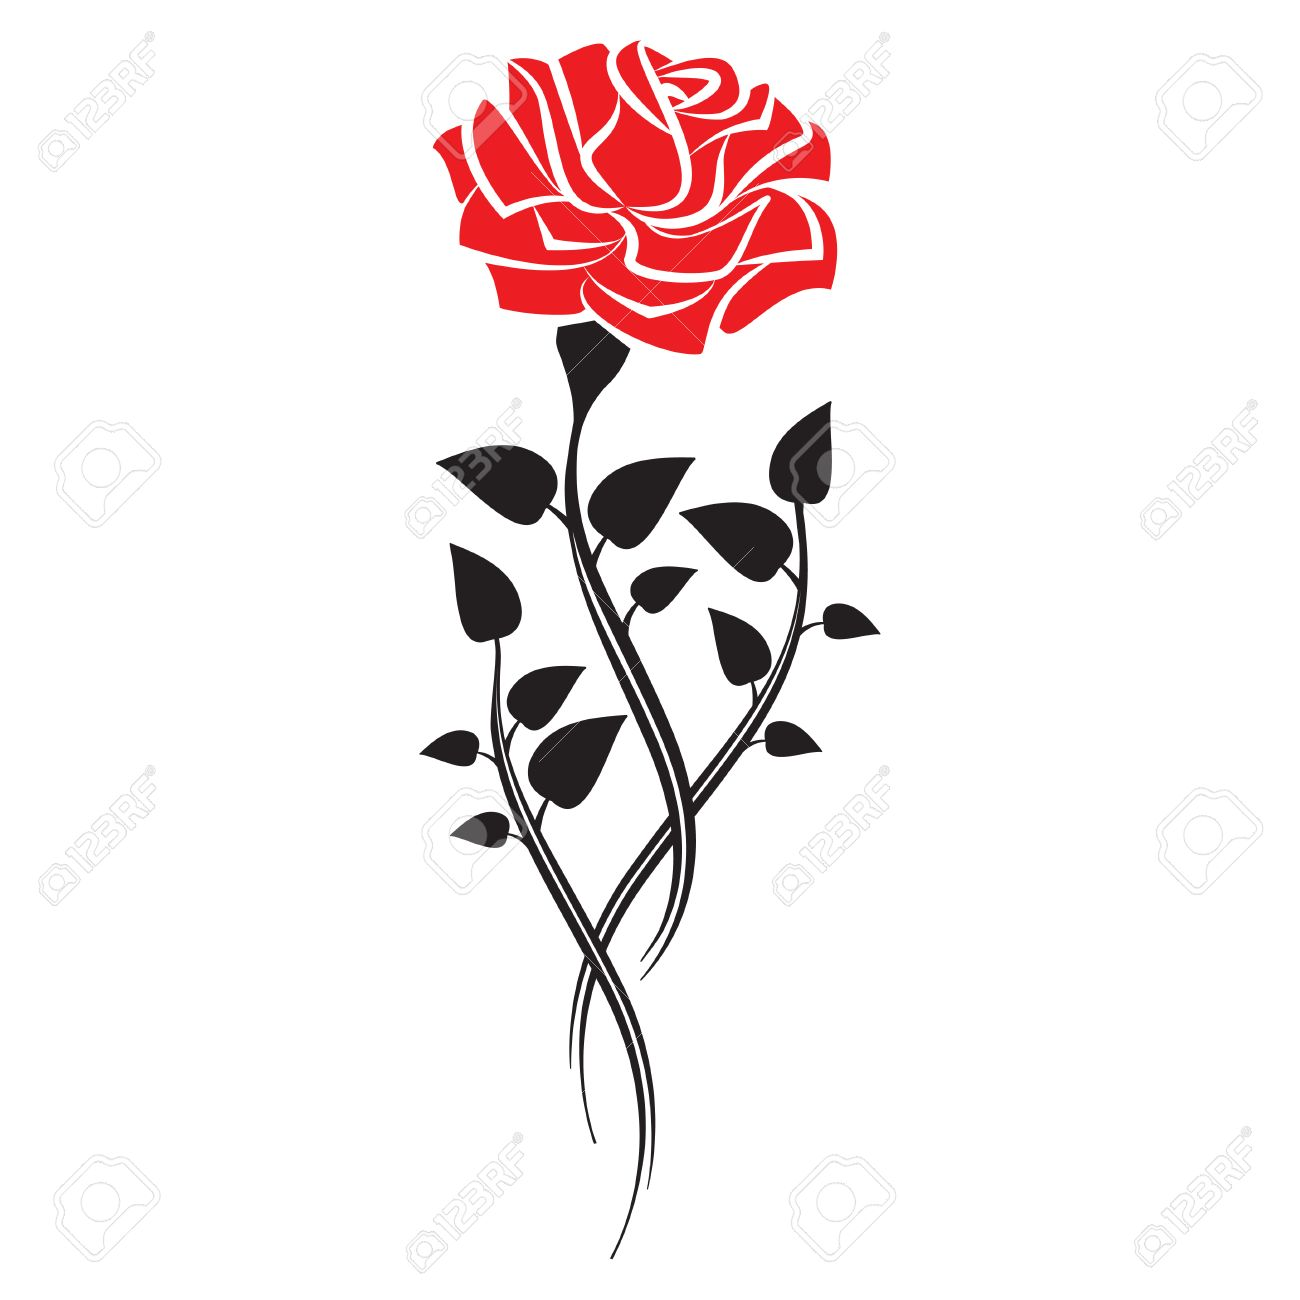 Black Silhouette Of Rose With Leaves Tattoo Style Rose Vector